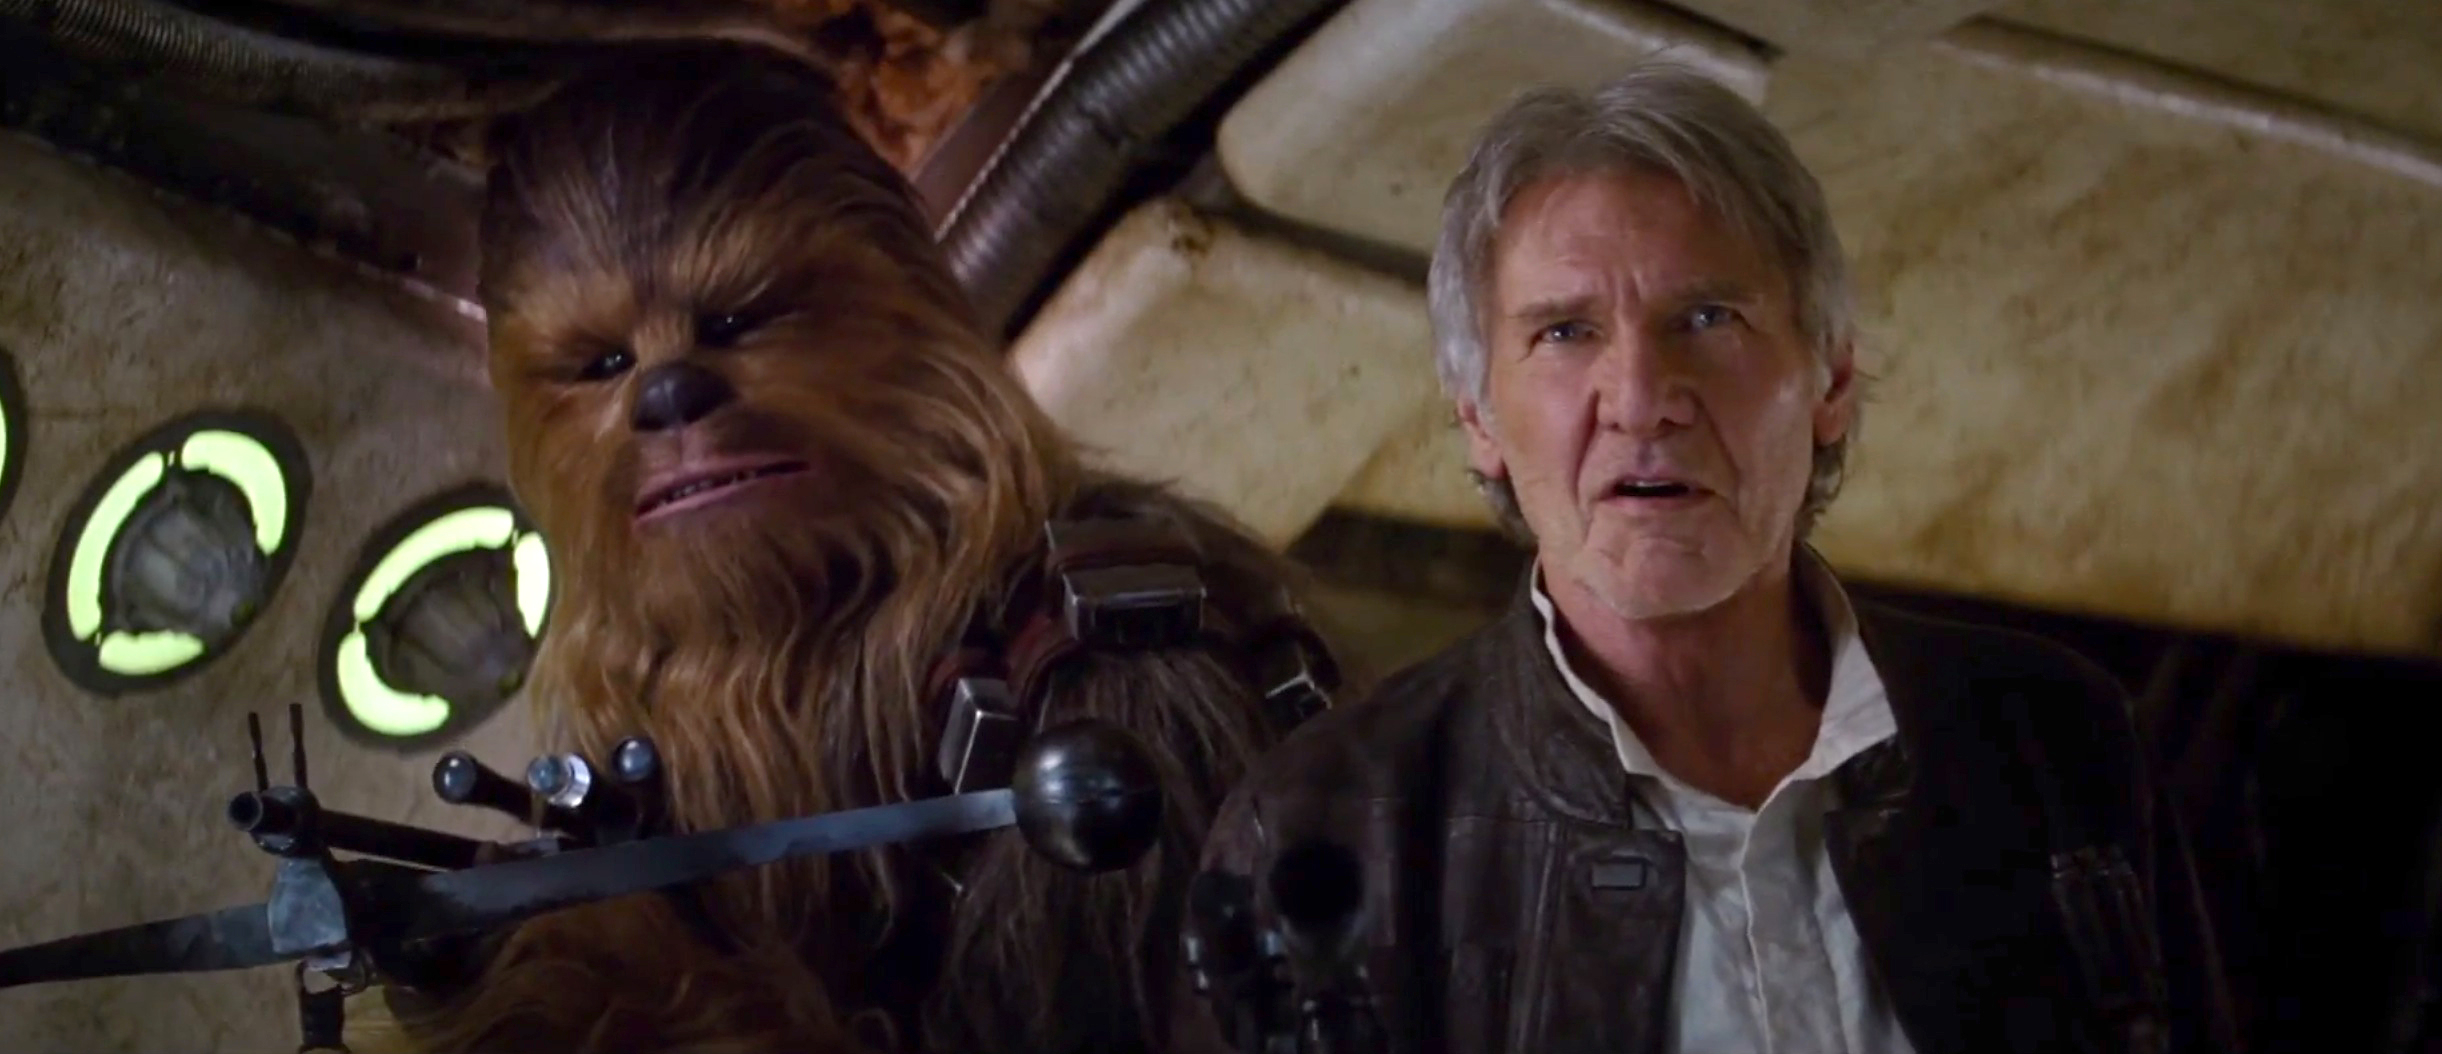 'Star Wars' teaser: Chewie gives us chills | USA Entertainment Now